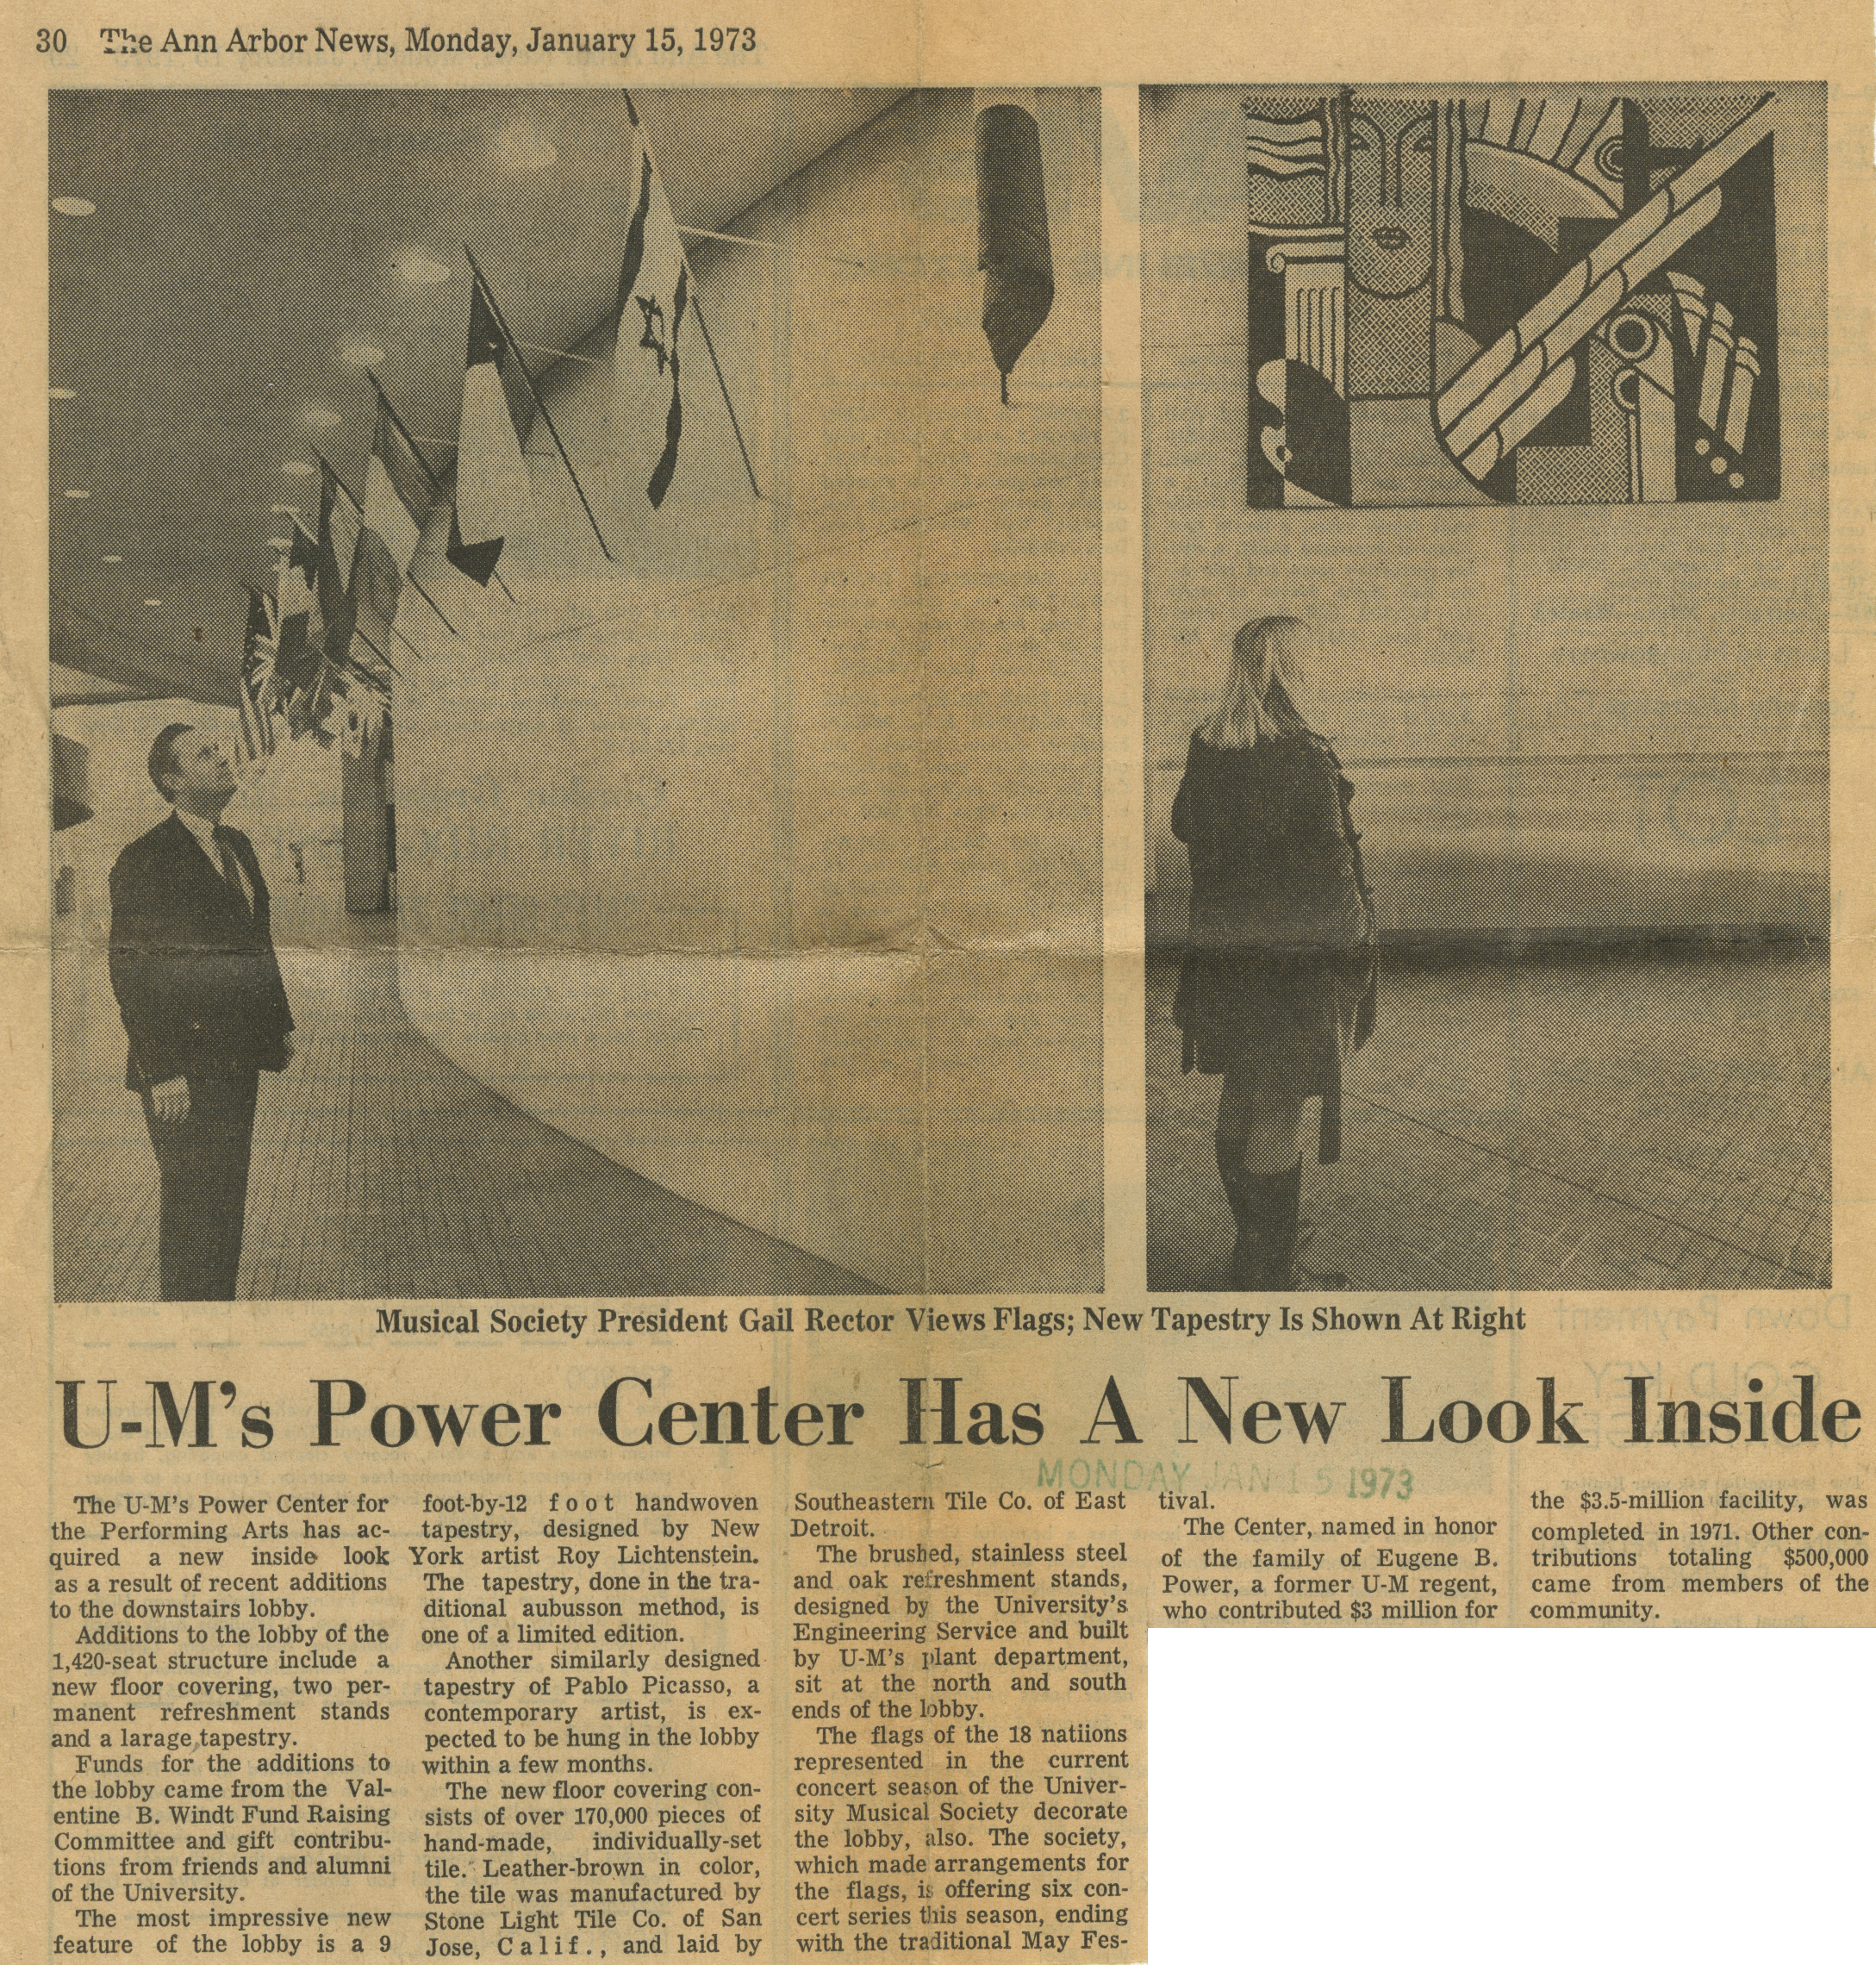 U-M's Power Center Has A New Look Inside image